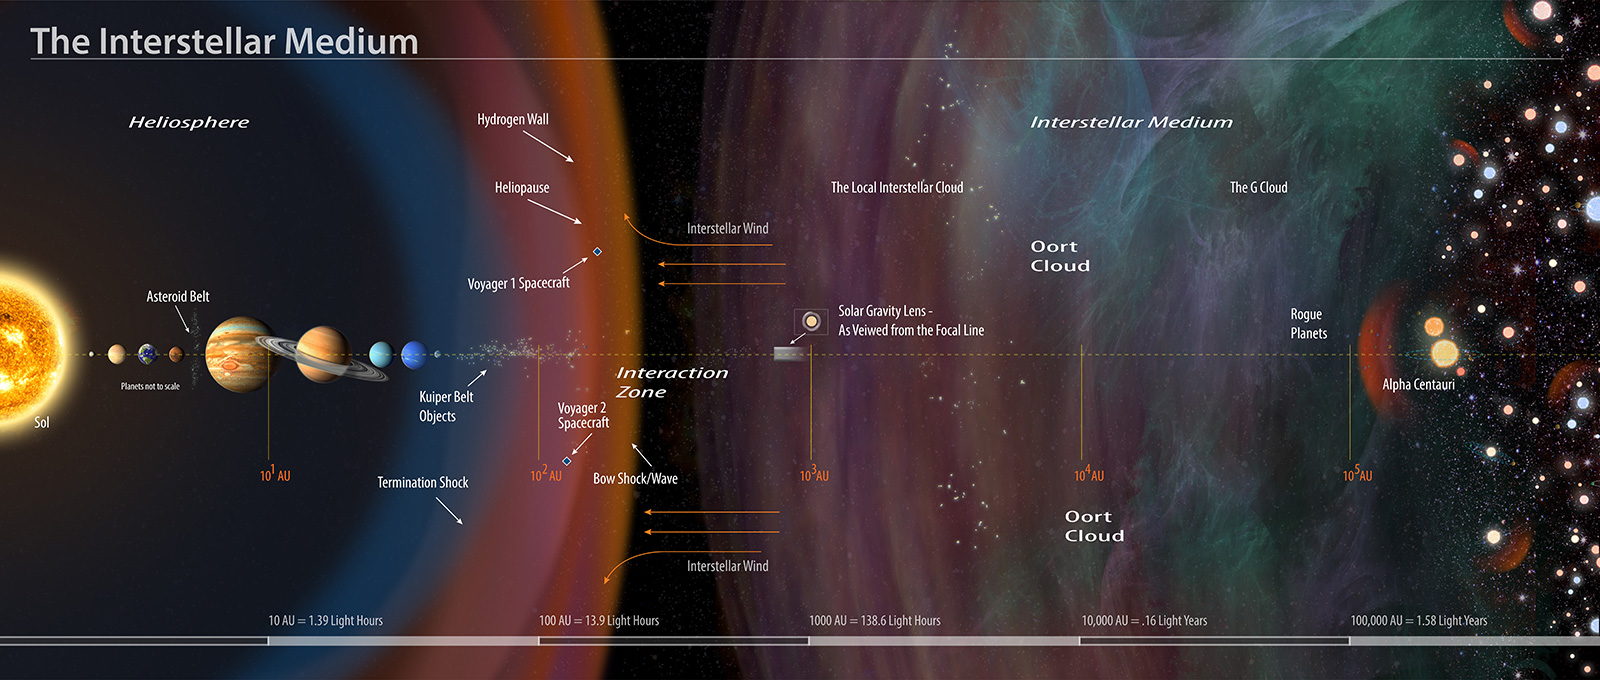 Illustration showing condensed span from the Sun to distant stars labeled, including the Sun, Kuiper Belt, Oort Cloud, Interstellar Medium and Alpha Centuari.